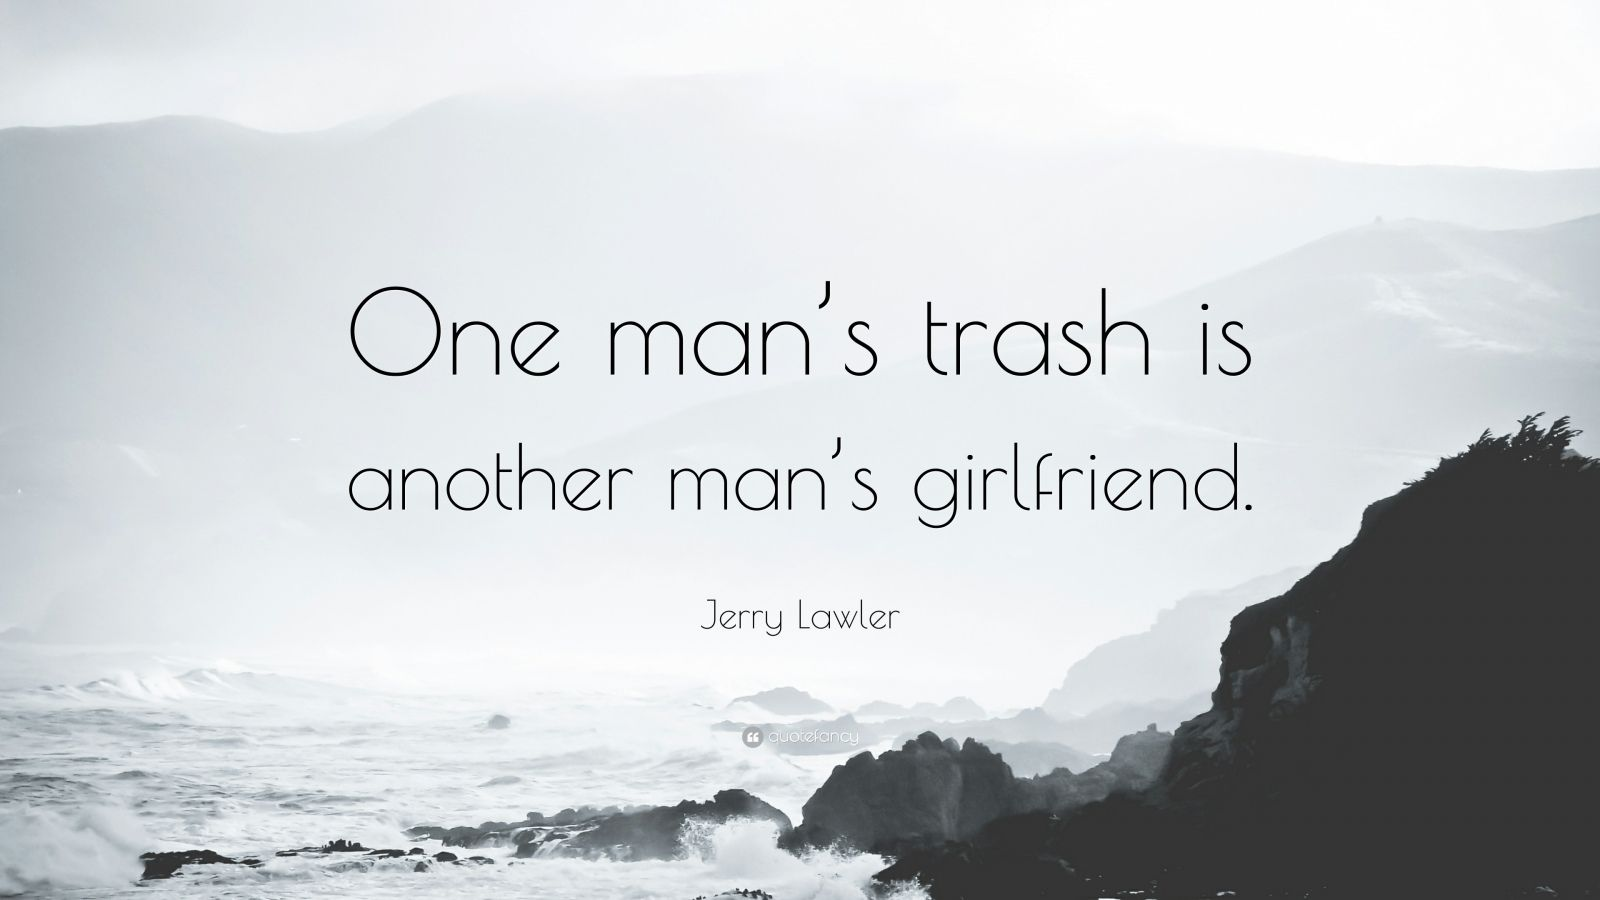 one man's trash is another man's